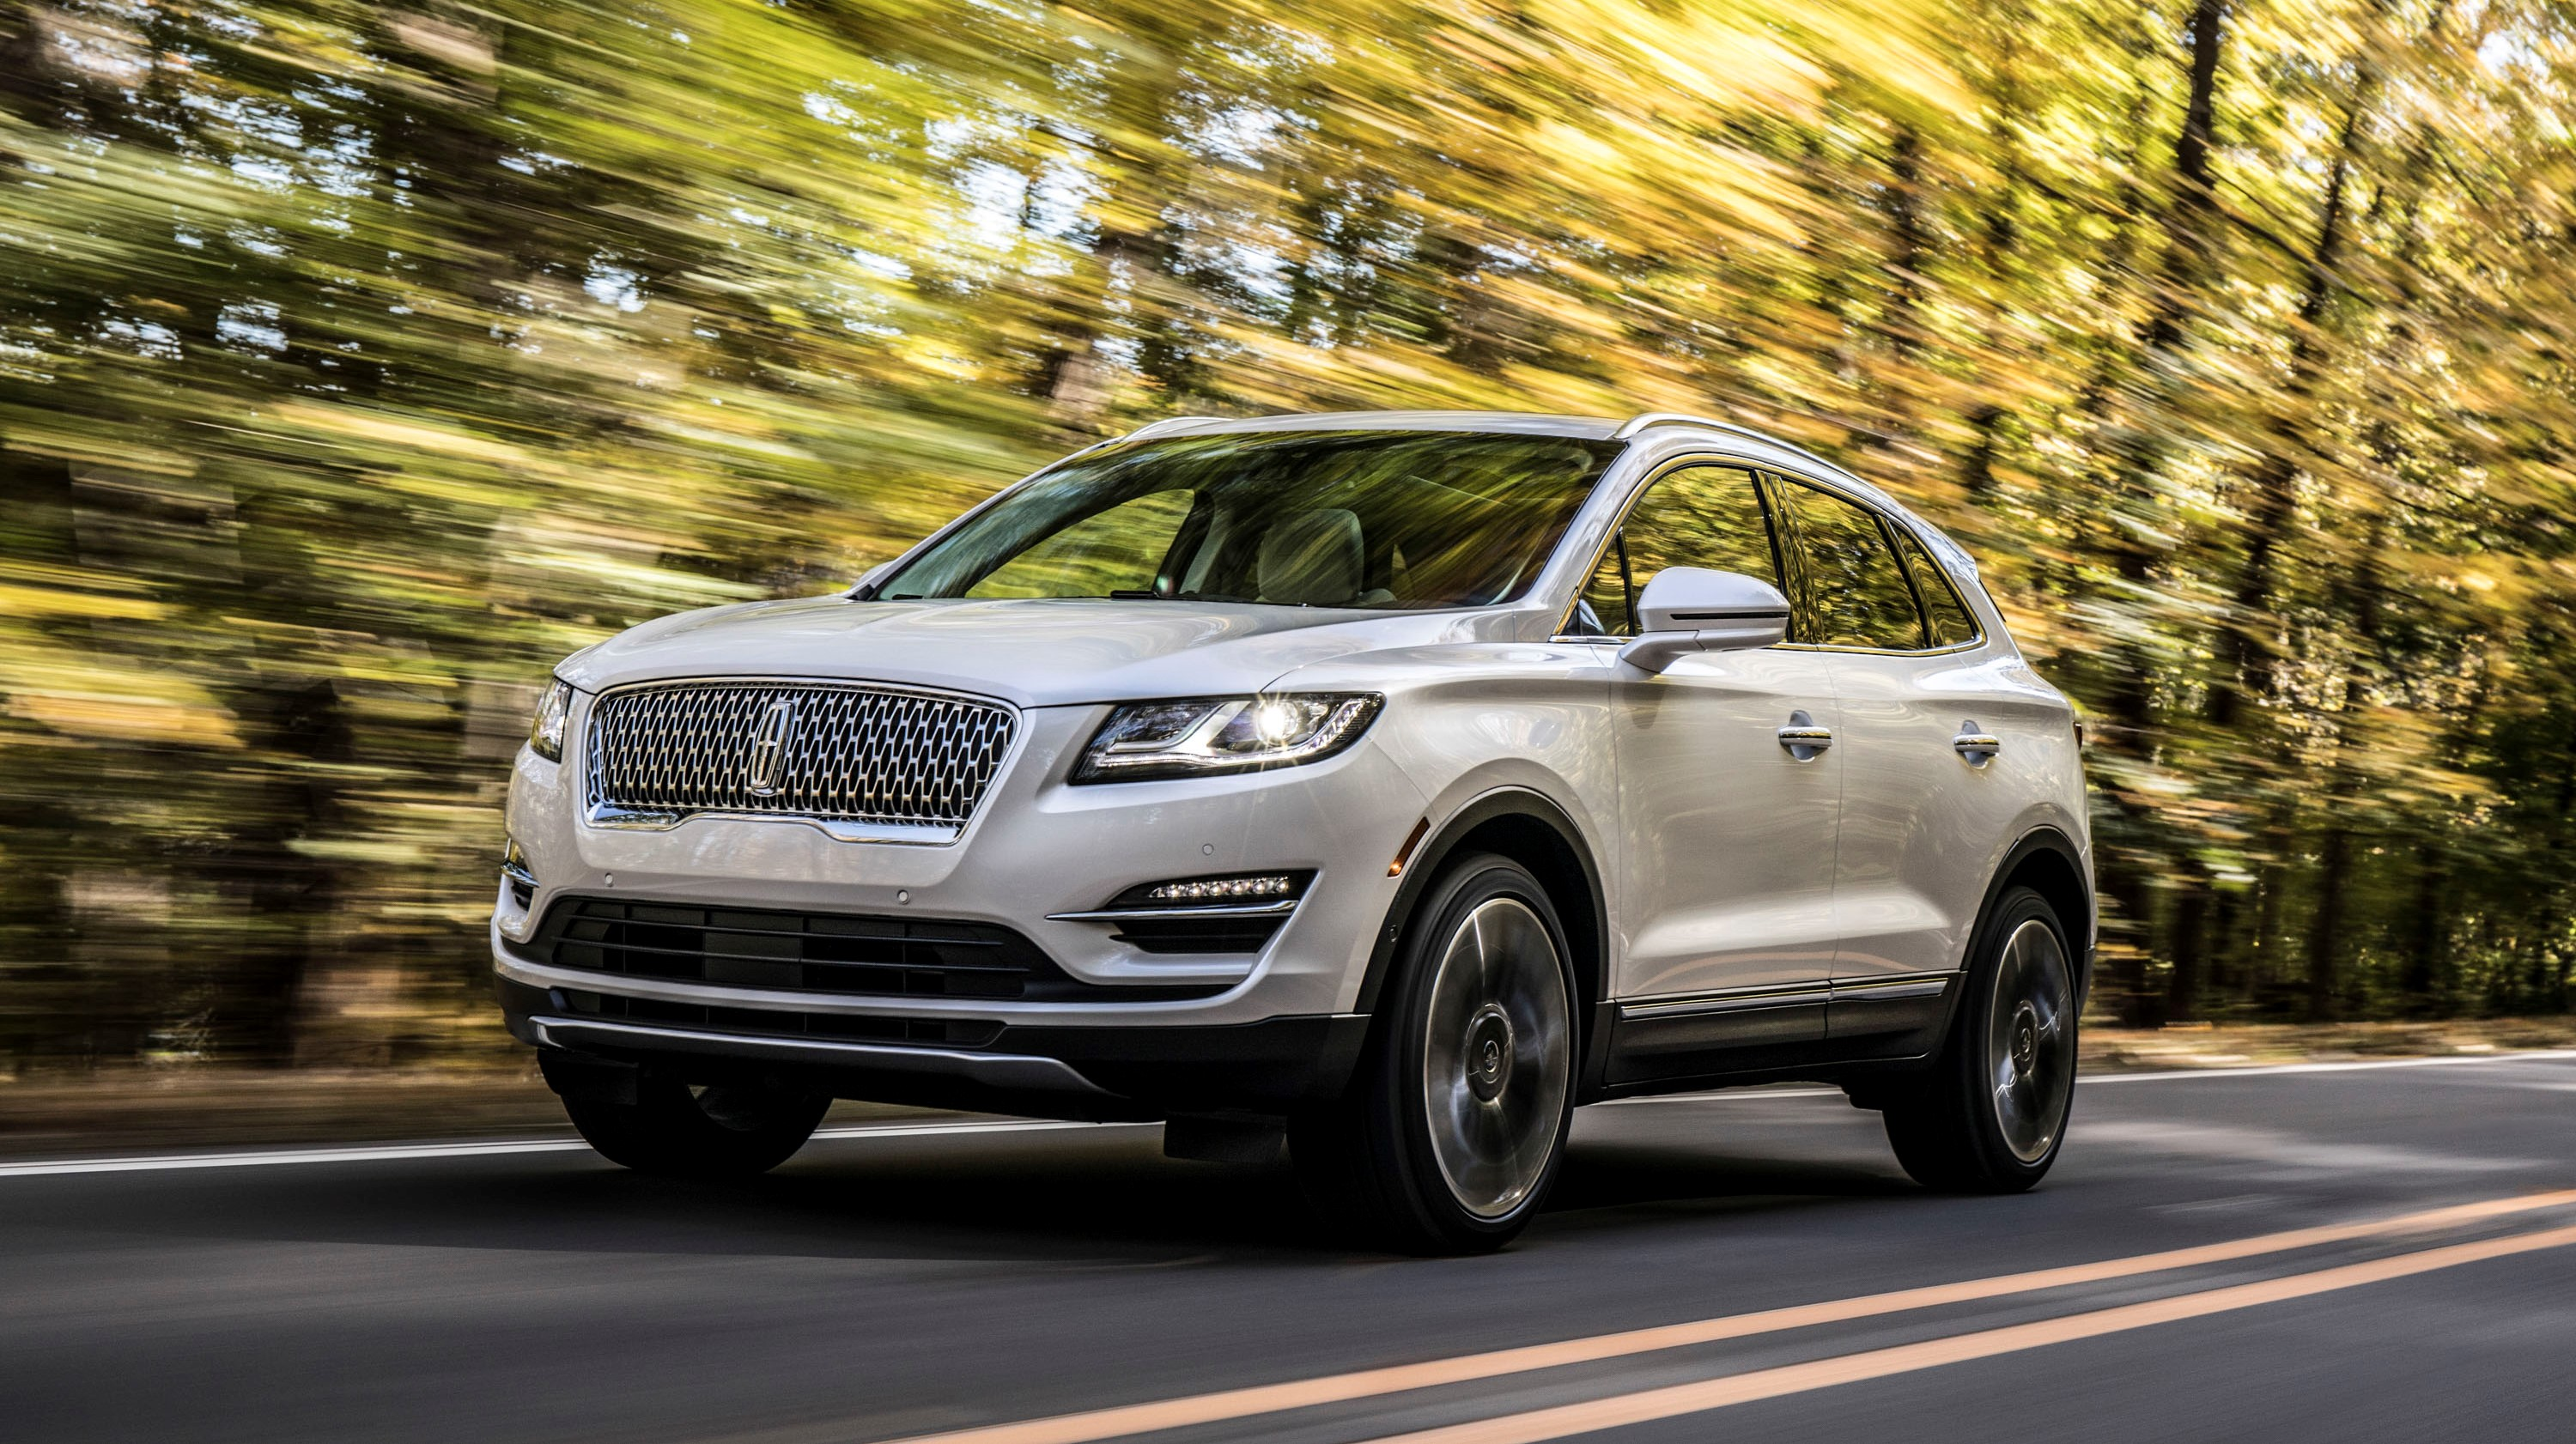 Ford Suv Models >> 2019 Lincoln MKC | Top Speed